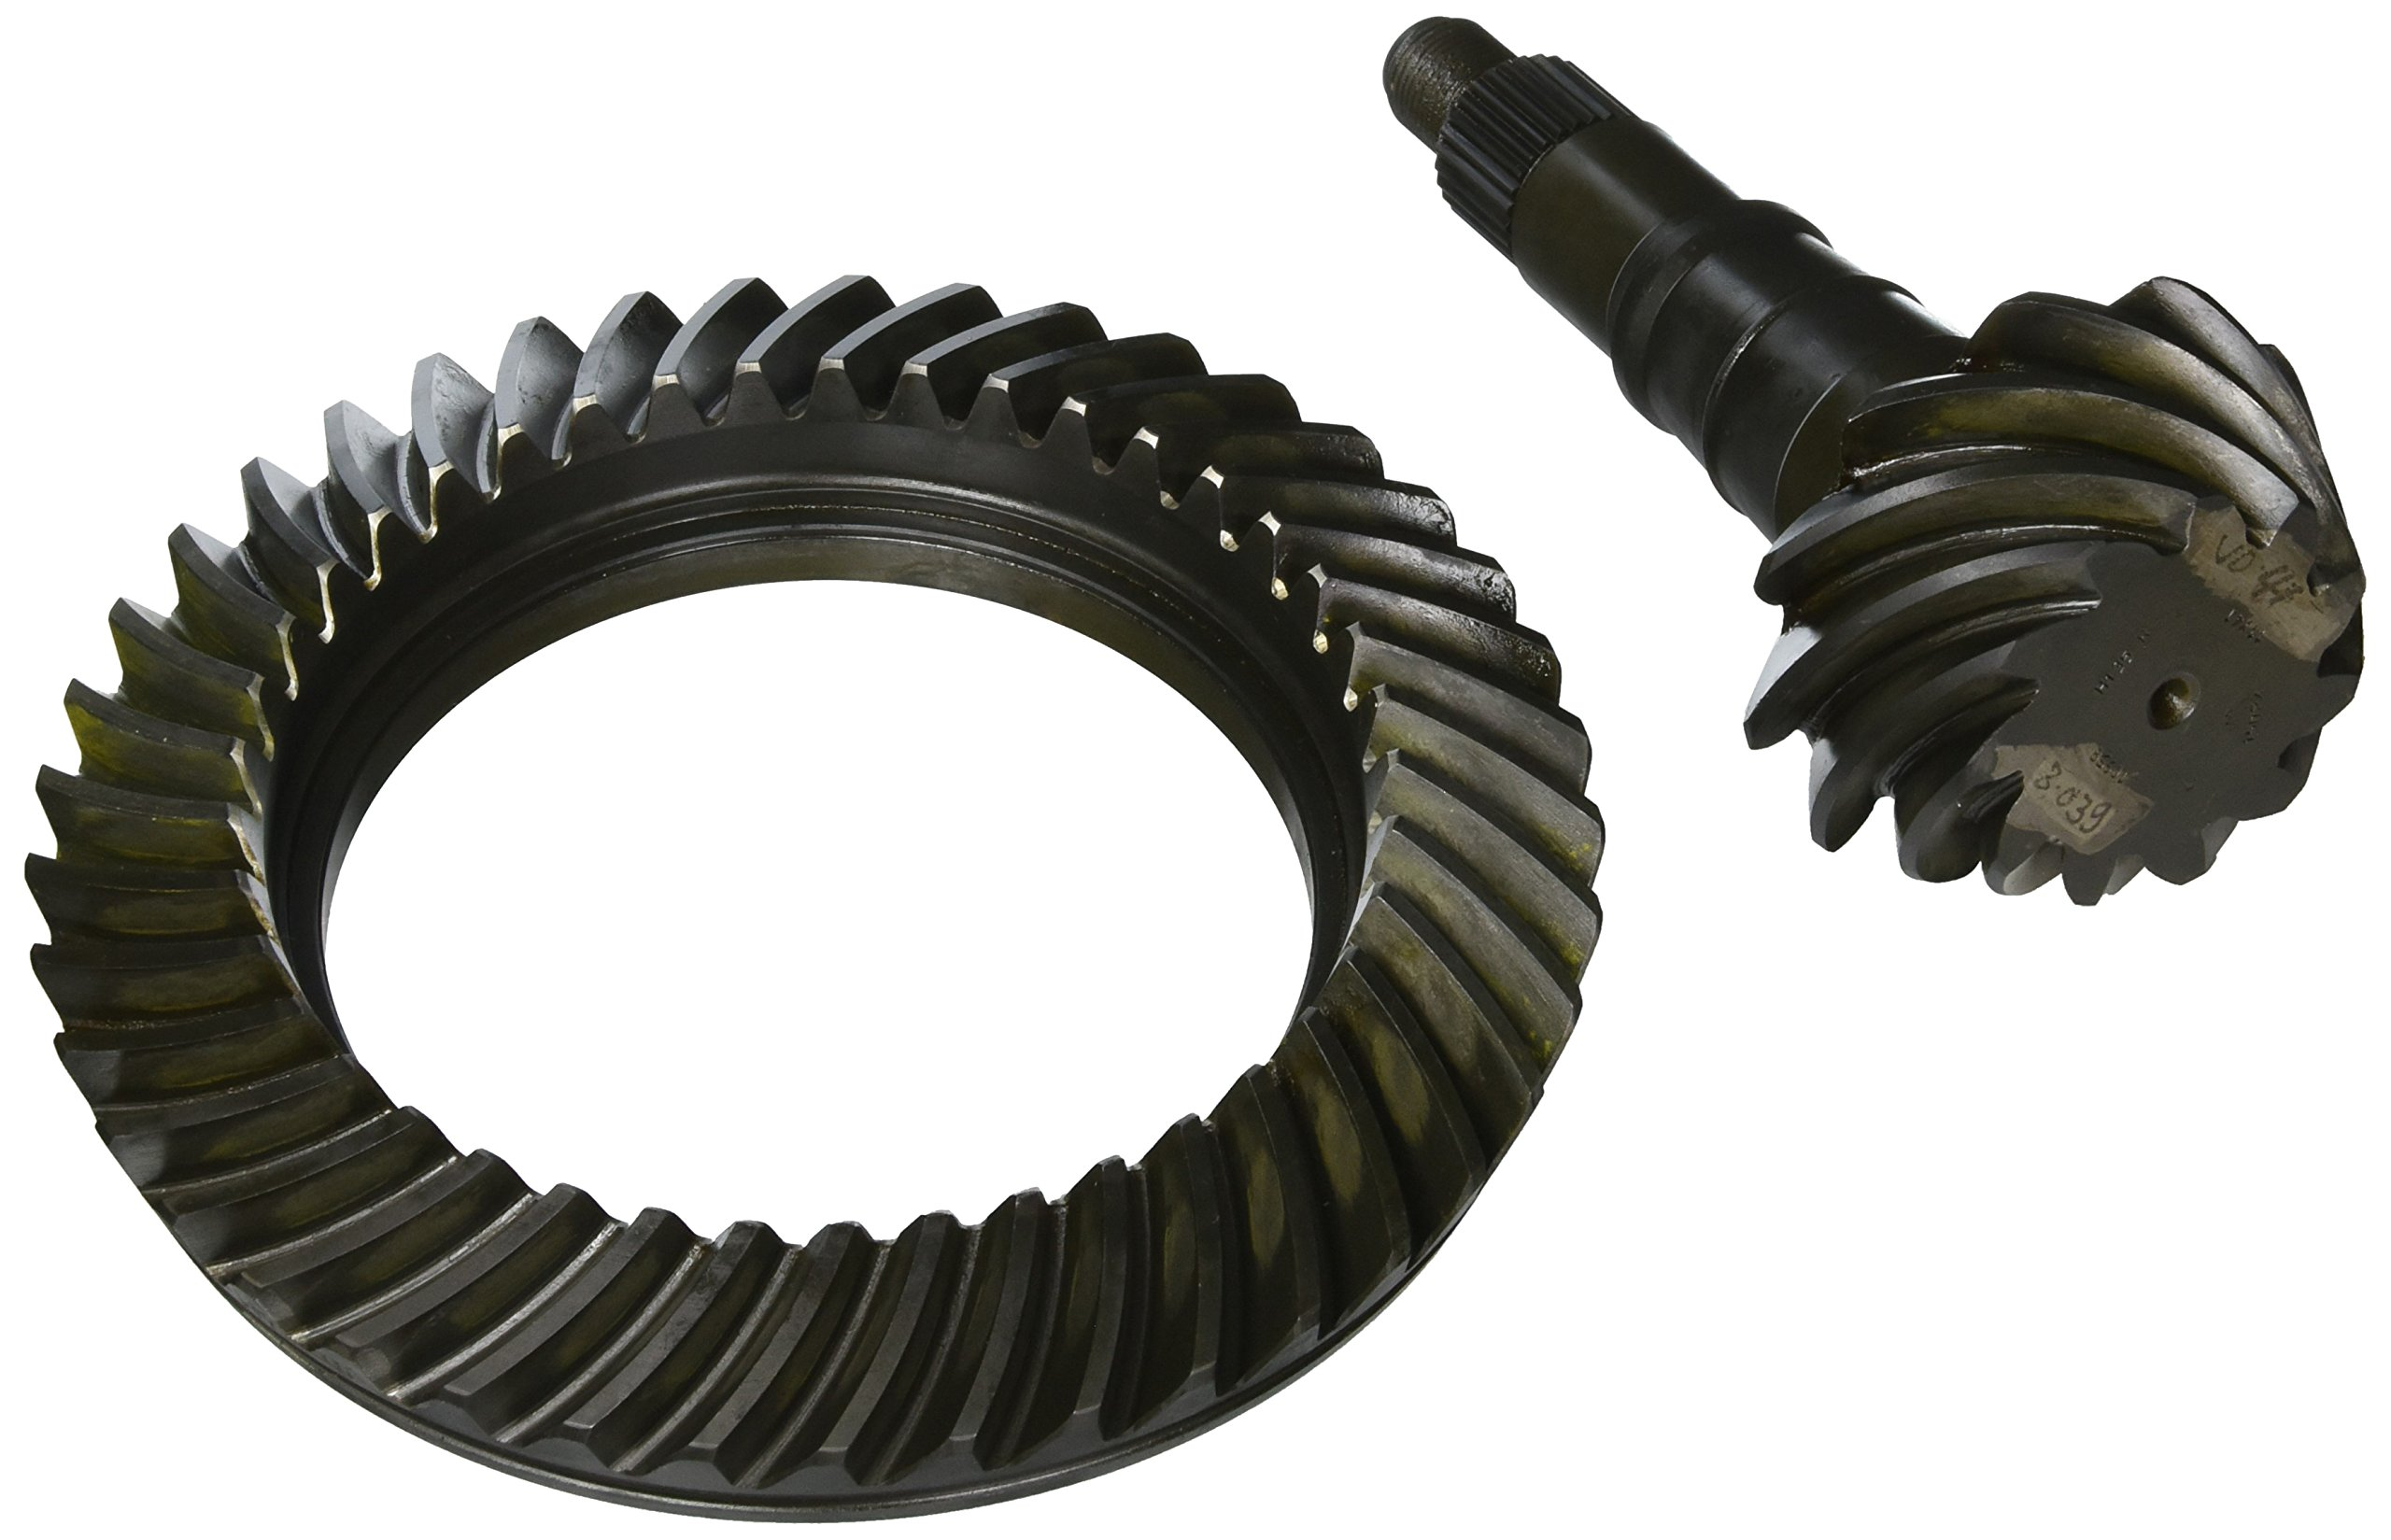 Motive Gear GM9.5-373 Ring and Pinion (GM 9.5'' Style, 3.73 Ratio) by Motive Gear (Image #1)